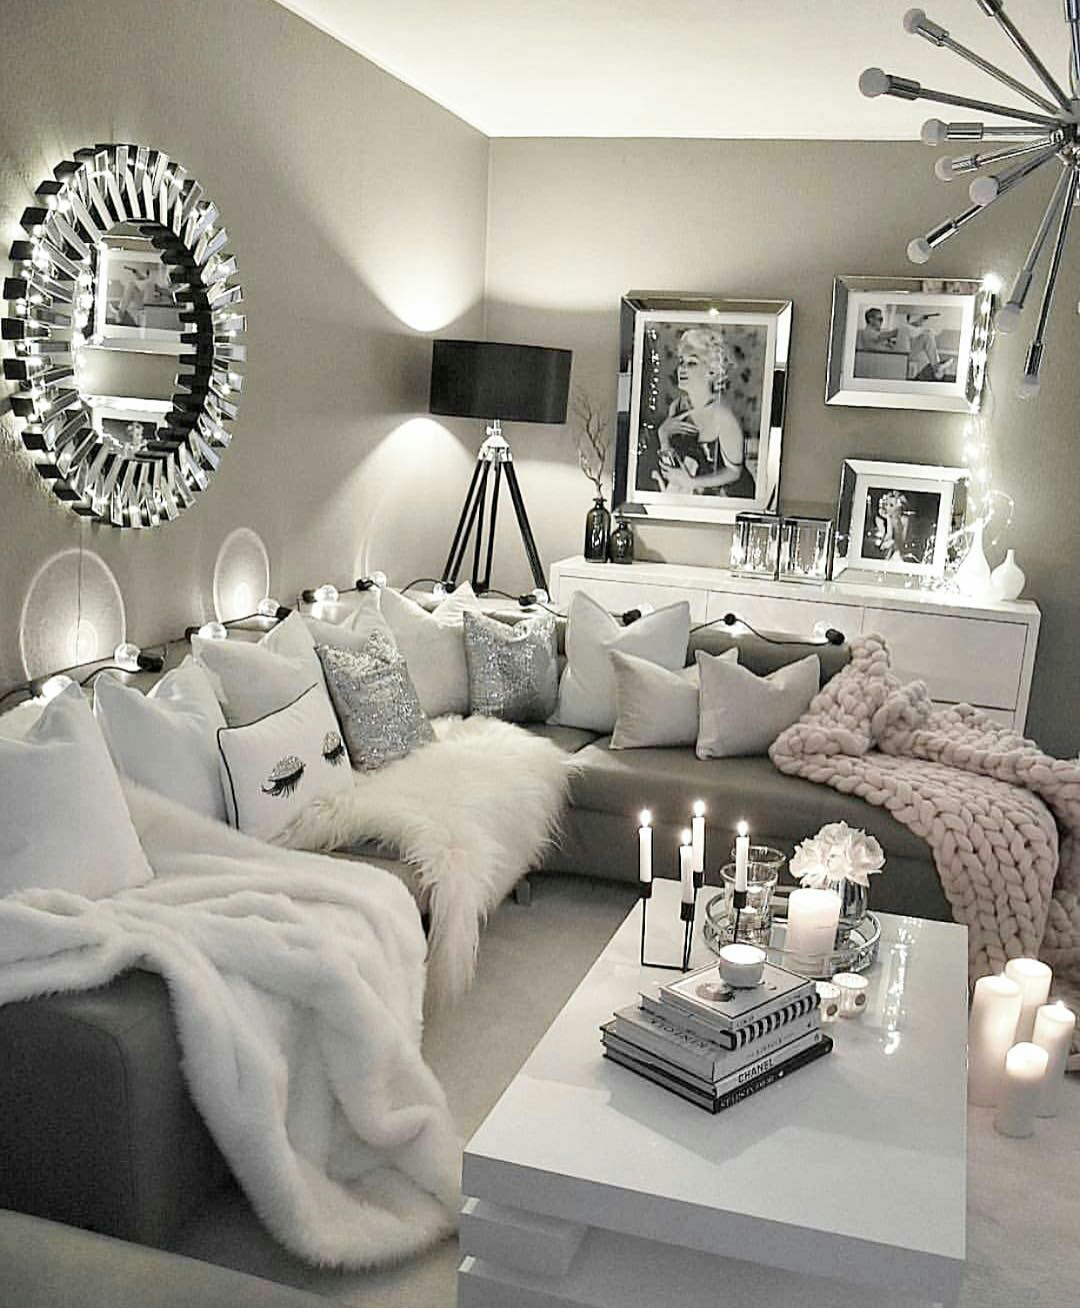 Trendy Home Decorating Ideas: Ideje Za Uređenje Dnevnog Boravka (FOTO)